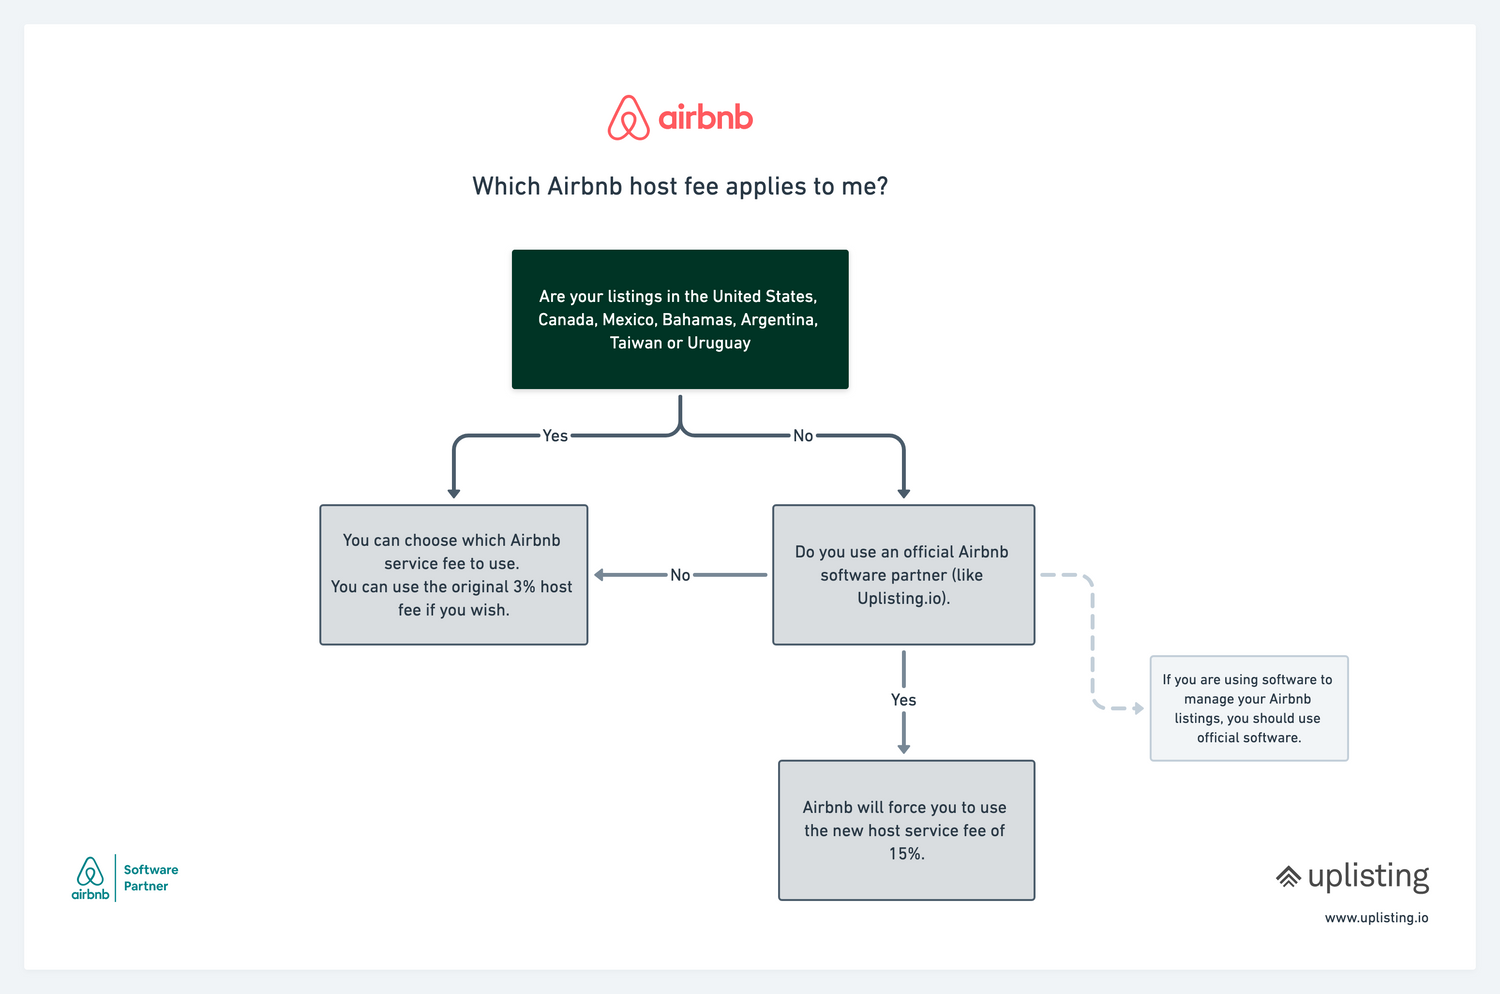 The ultimate guide to Airbnb service fees (3%, 14%, 15%, 17%)